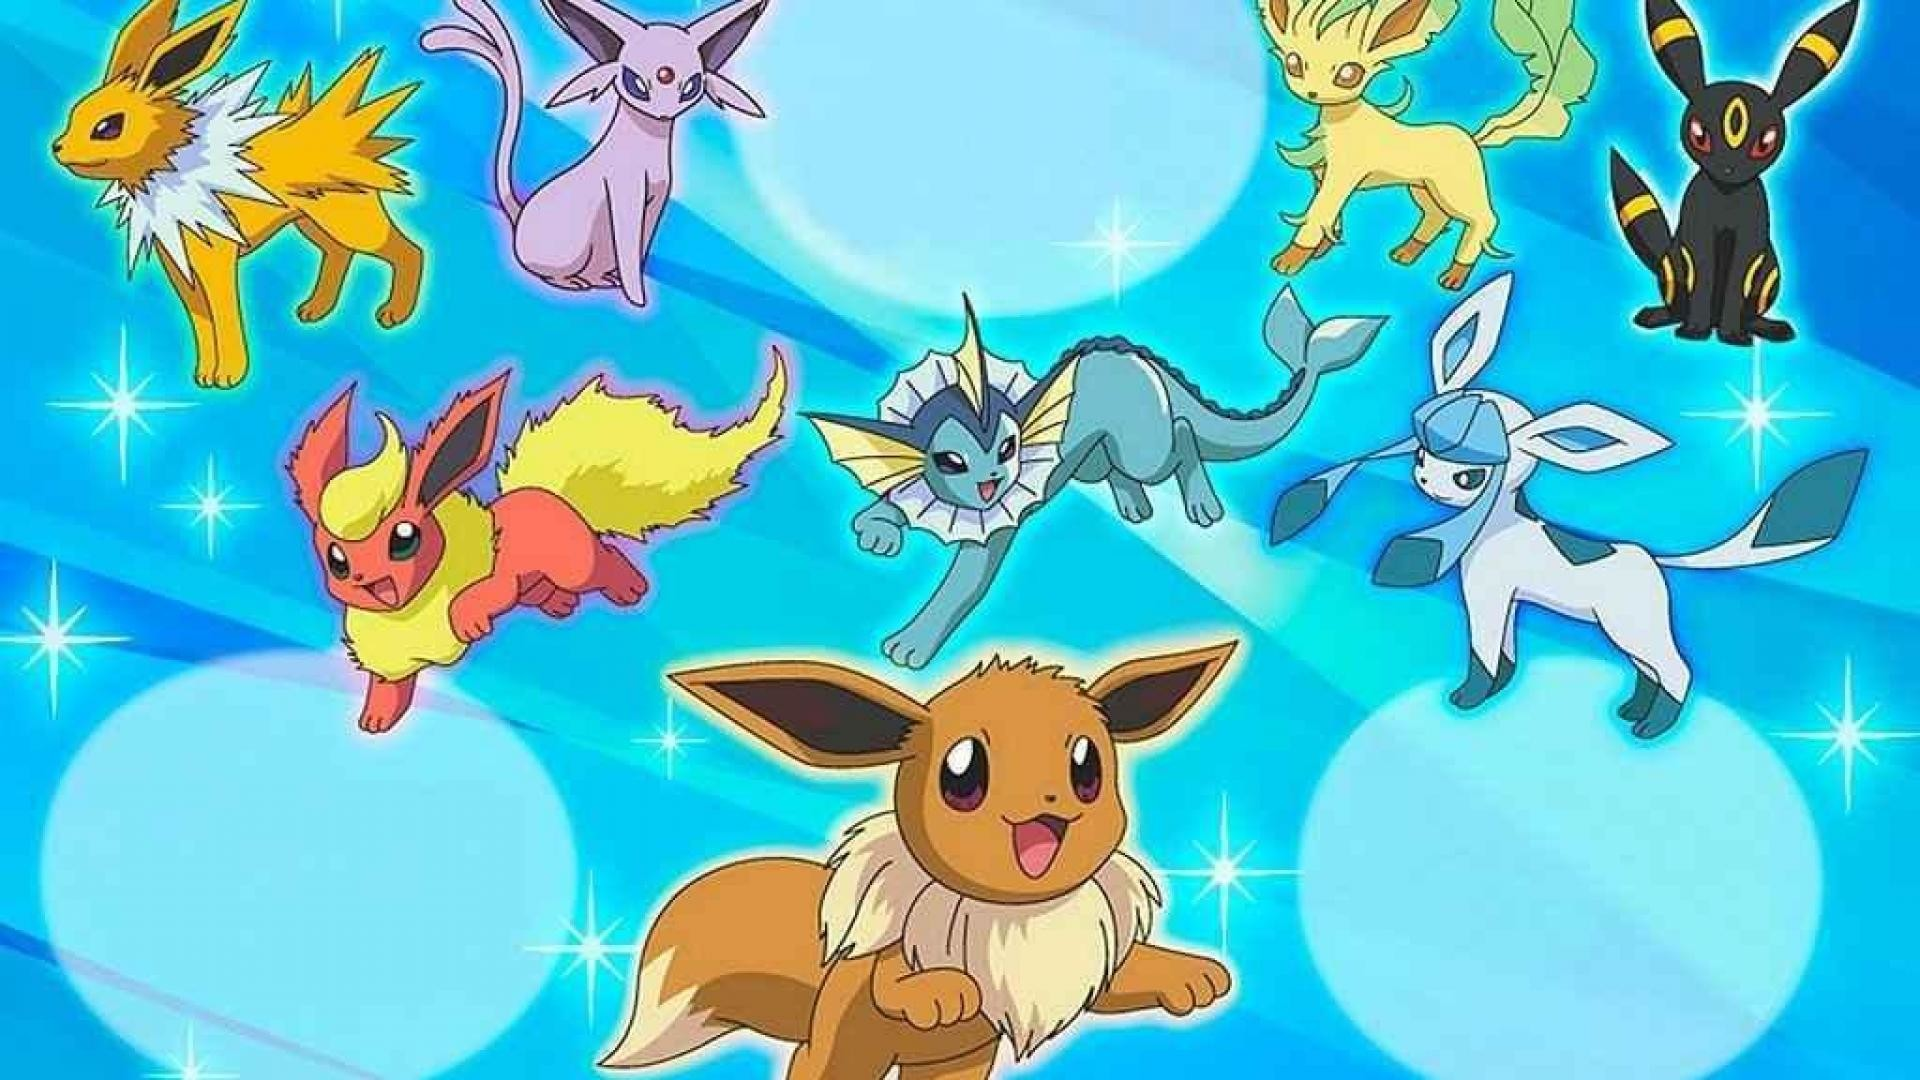 1920x1080 EEVEE EVOLUTIONS WALLPAPER - (#77459) - HD Wallpapers .